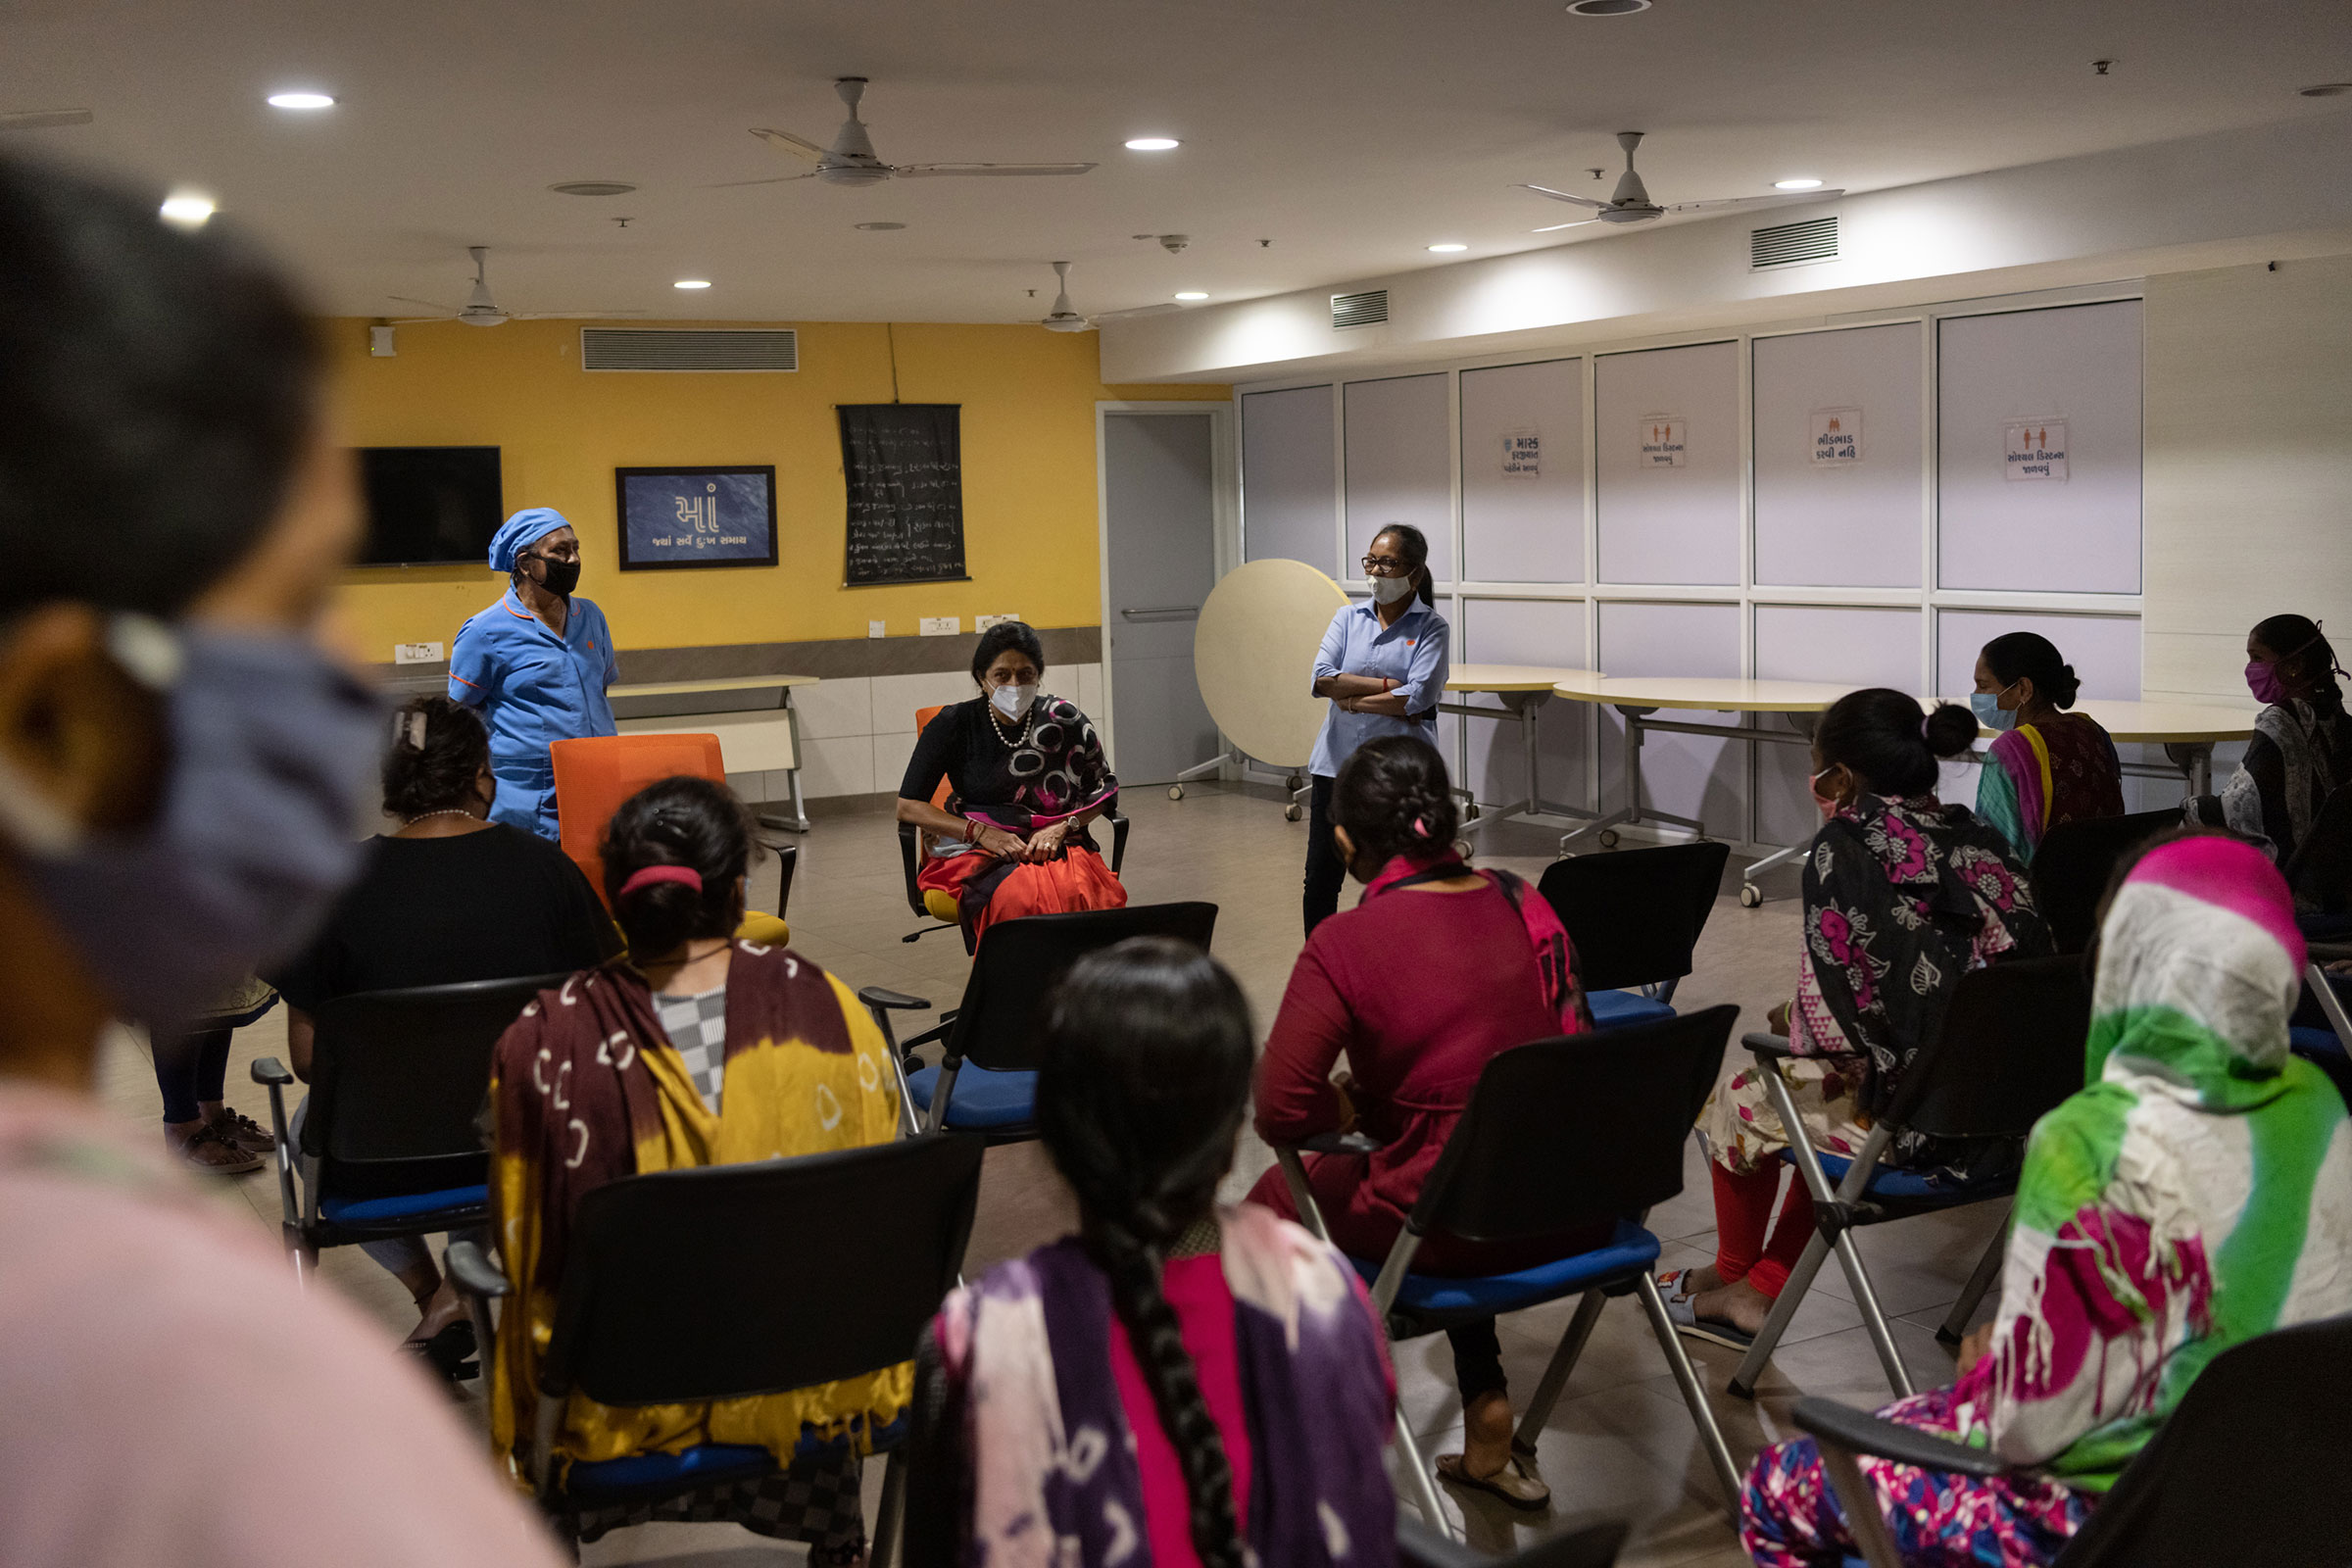 Dr. Nayana Patel, fertility specialist and founder of the Akanksha Hospital, holds a meeting with surrogates in the hospital's basement. The women told TIME that Patel rarely came to speak with them.